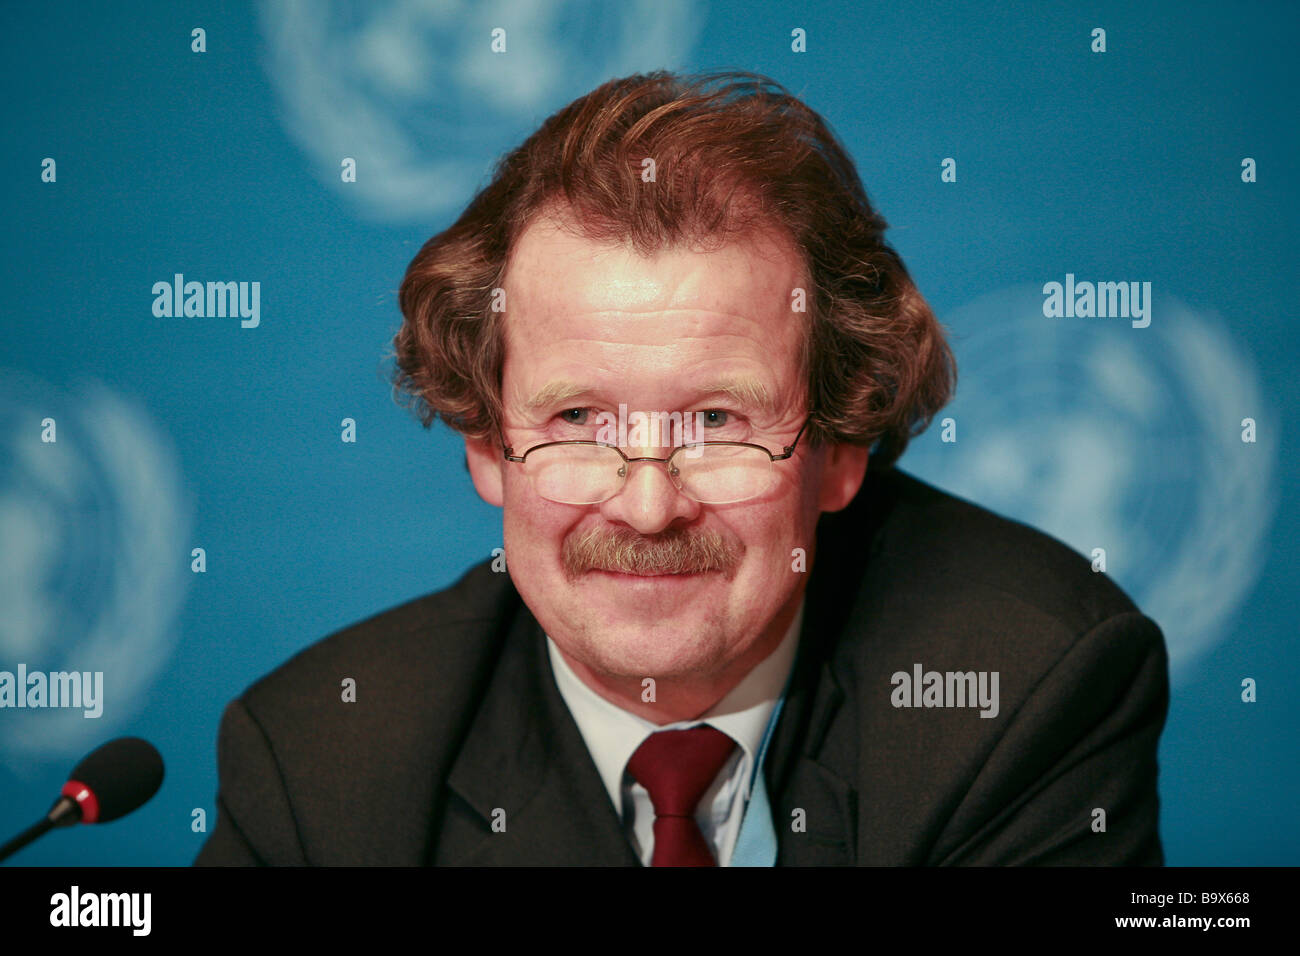 Manfred Nowak - Austrian human rights lawyer and United Nations Special Rapporteur on Torture. - Stock Image